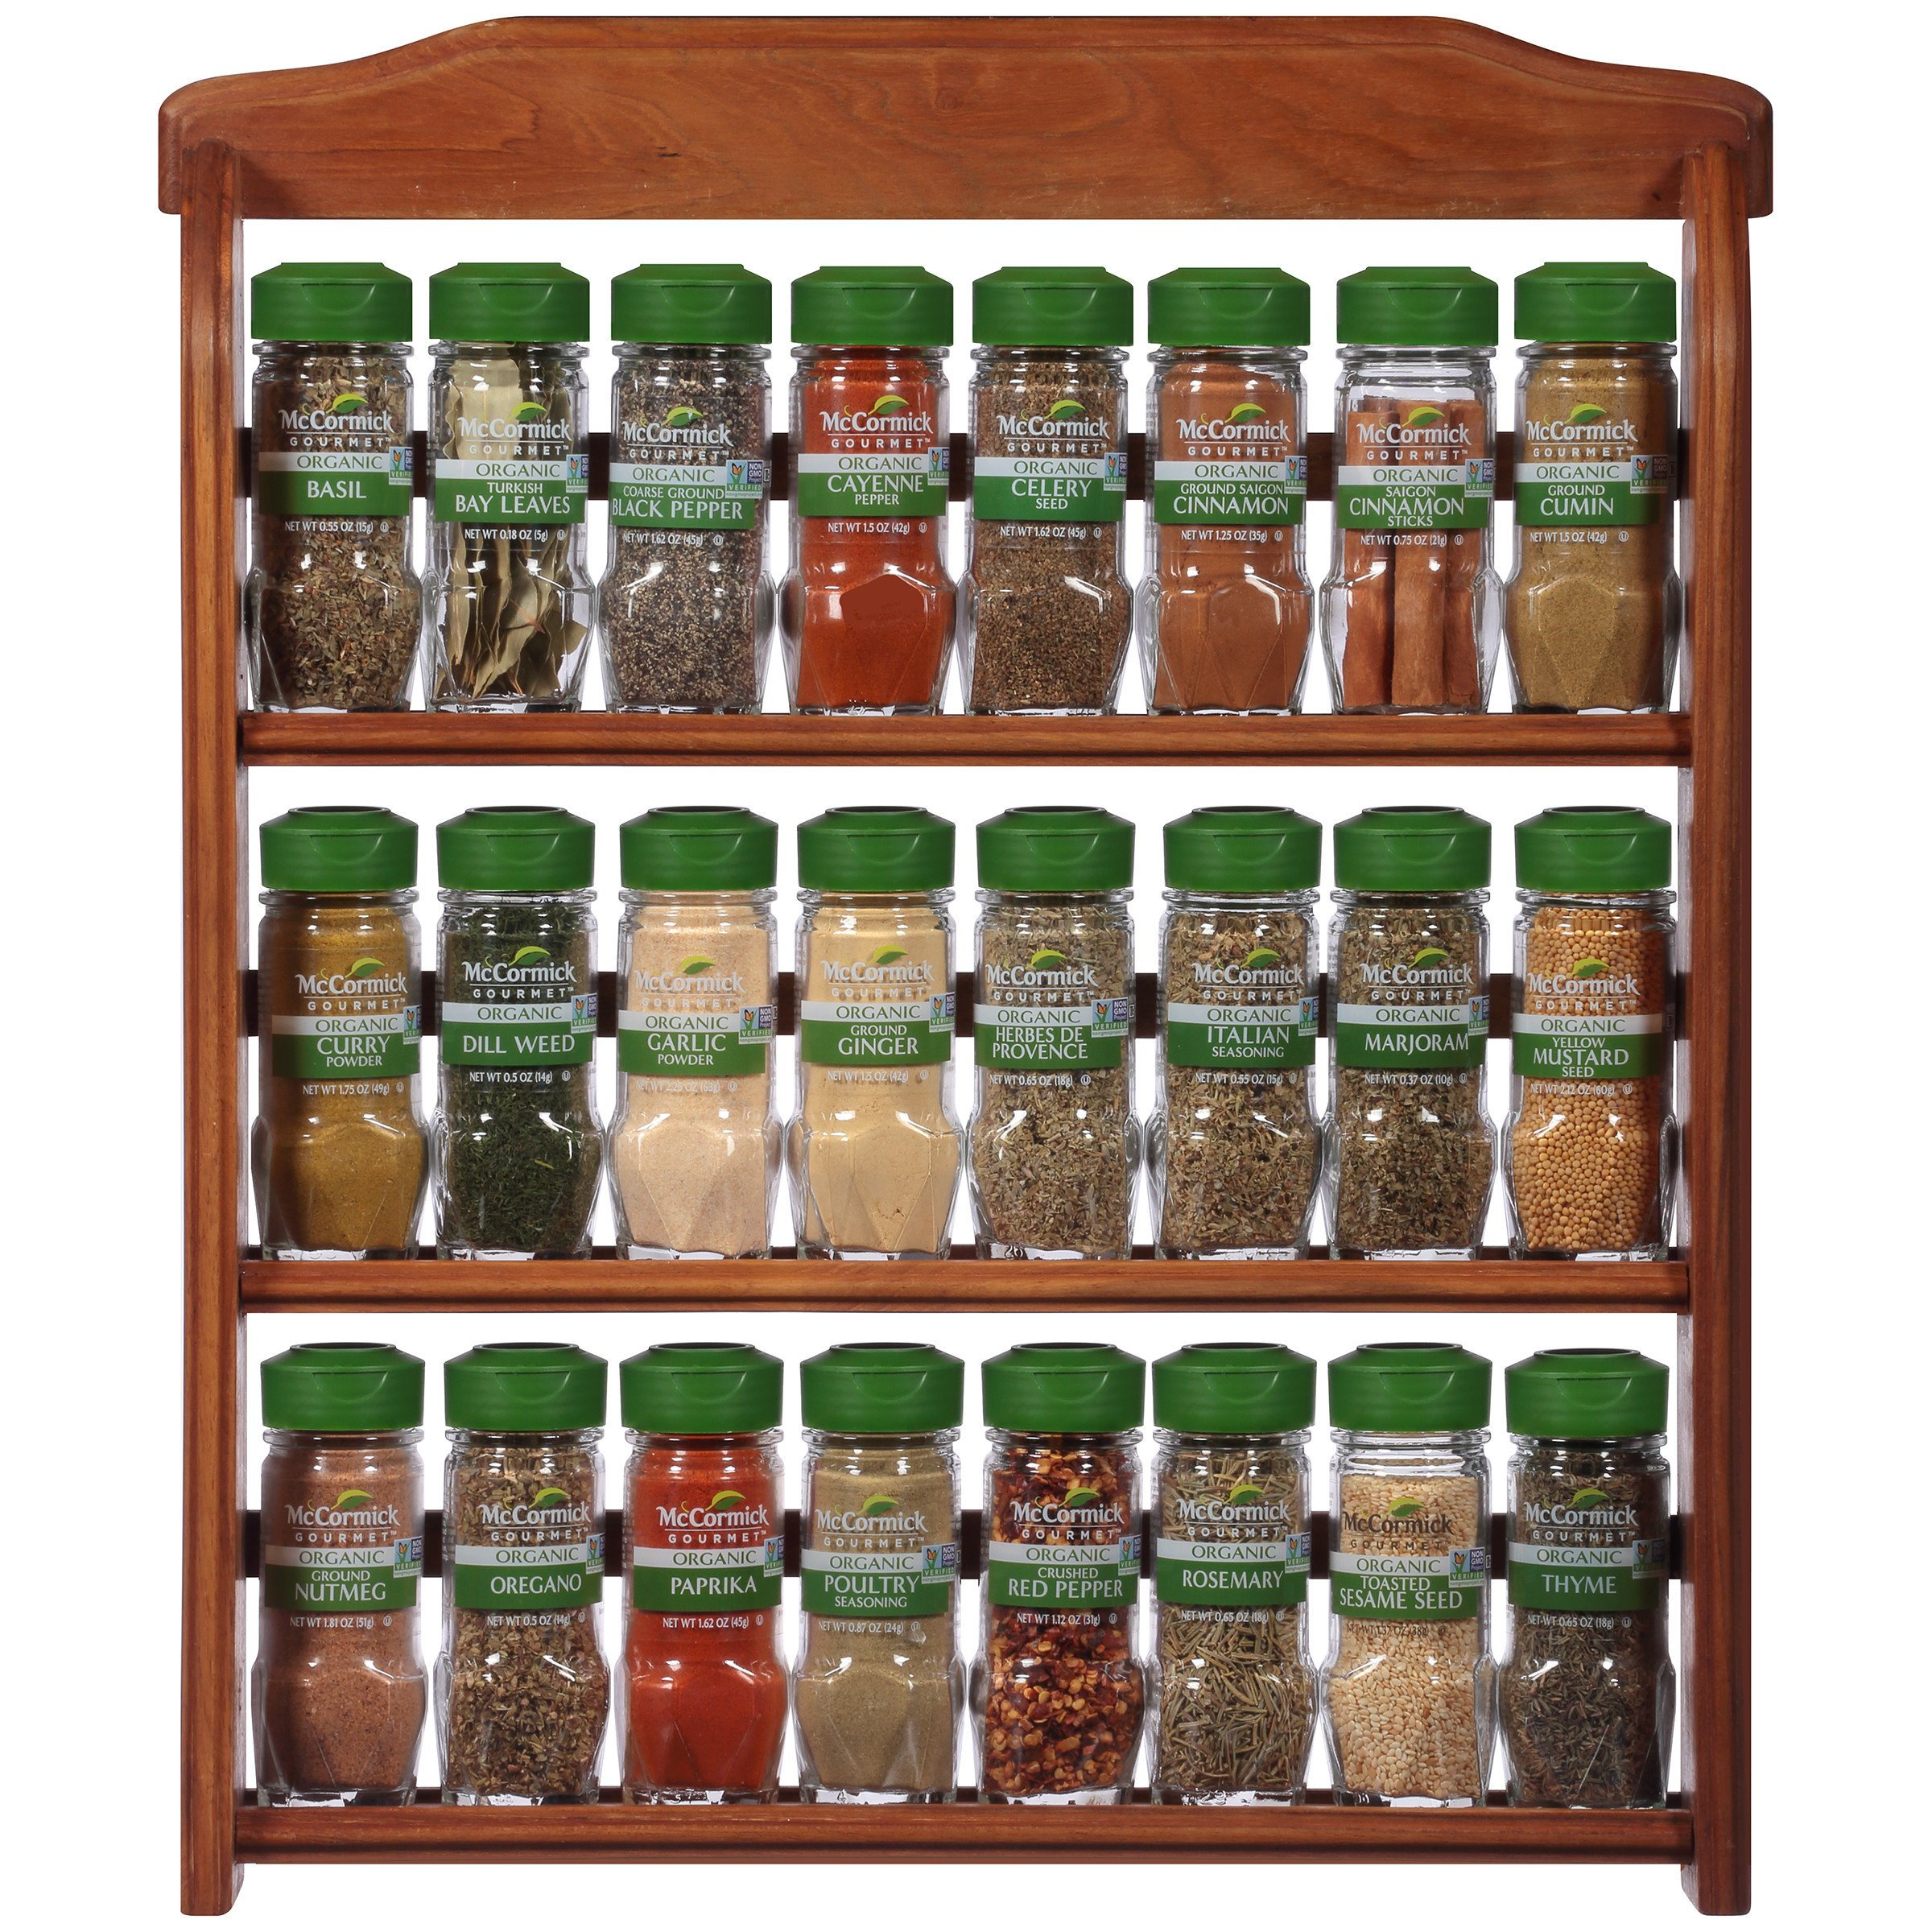 McCormick Gourmet Organic Wood Spice Rack (with Spices Included), 3 Spice Rack Shelves, 24 Herbs & Spices by McCormick (Image #1)